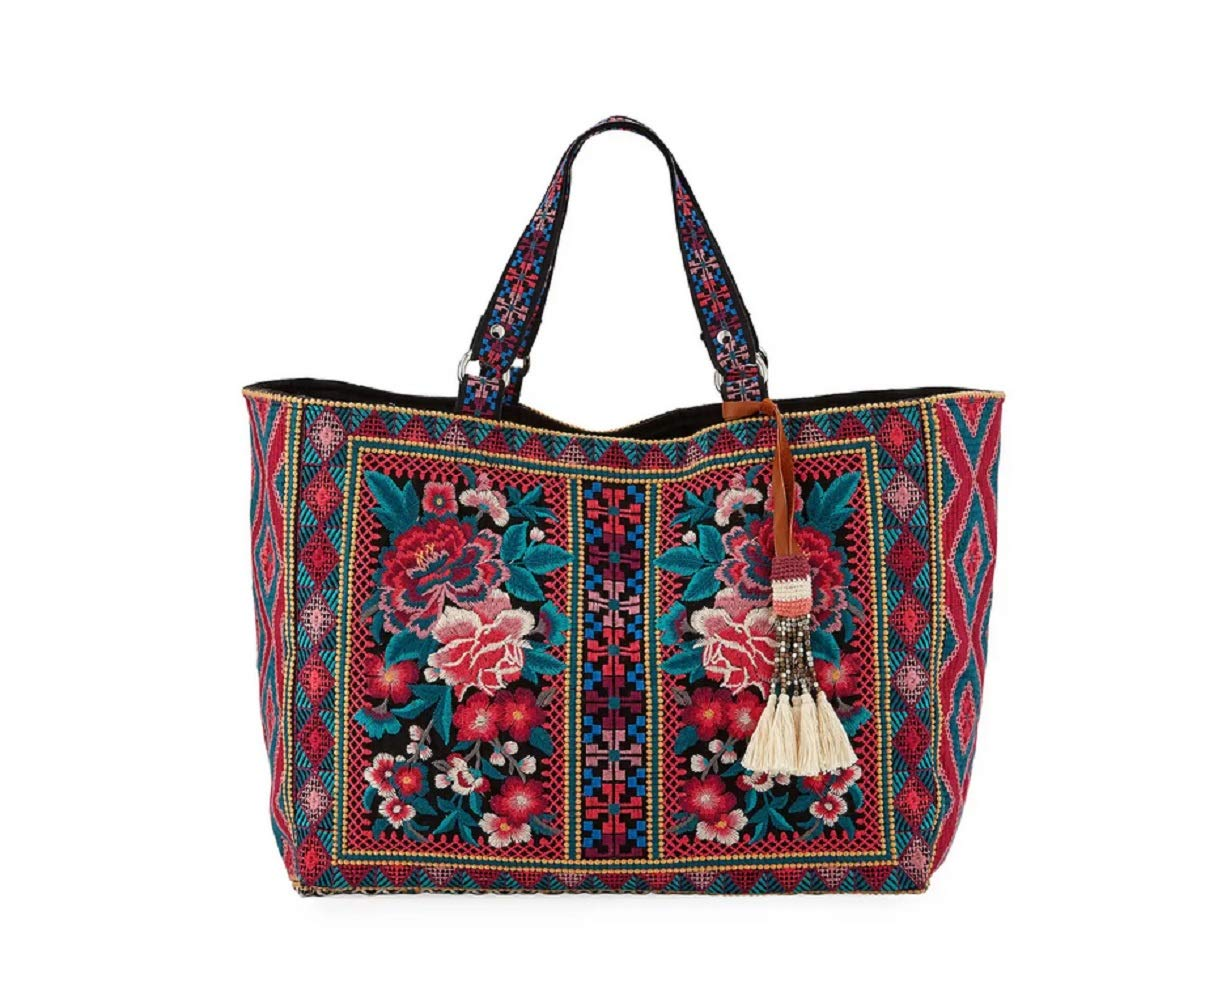 Johnny Was Annaliese Embroidered Tote Bag - J03819 (Black)